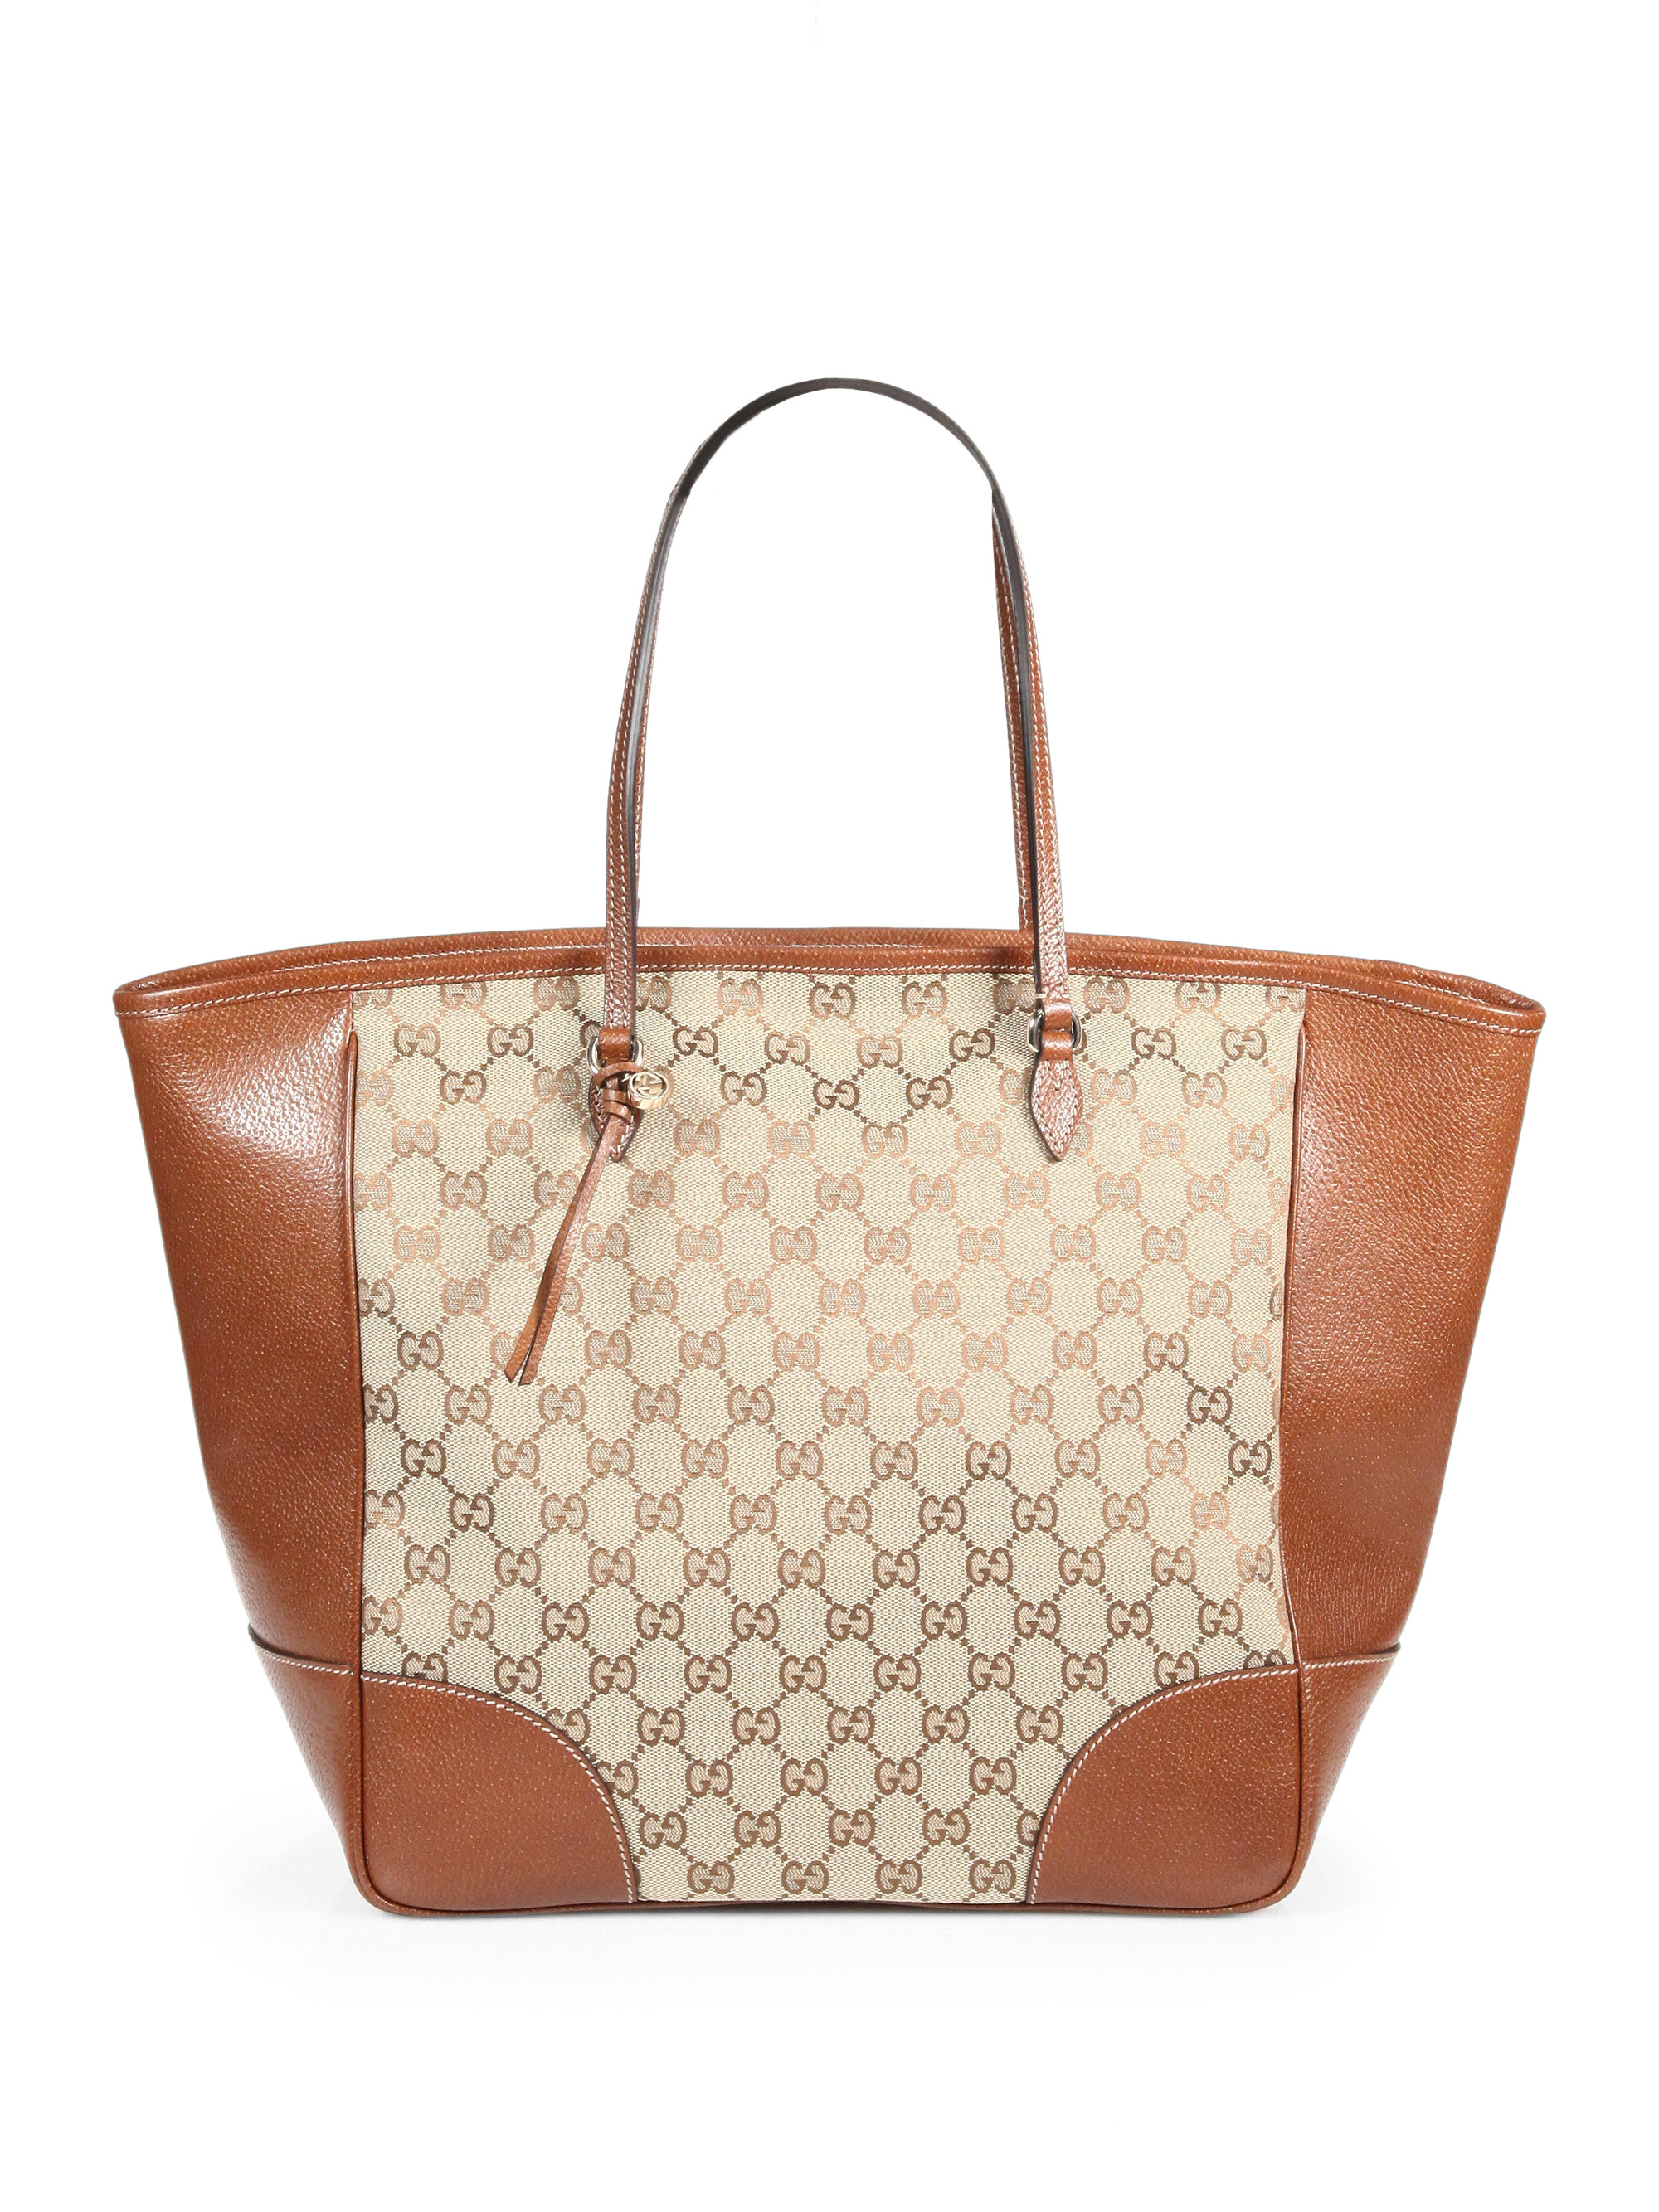 0fc4ea6309a Lyst - Gucci Bree Original GG Canvas Tote in Brown